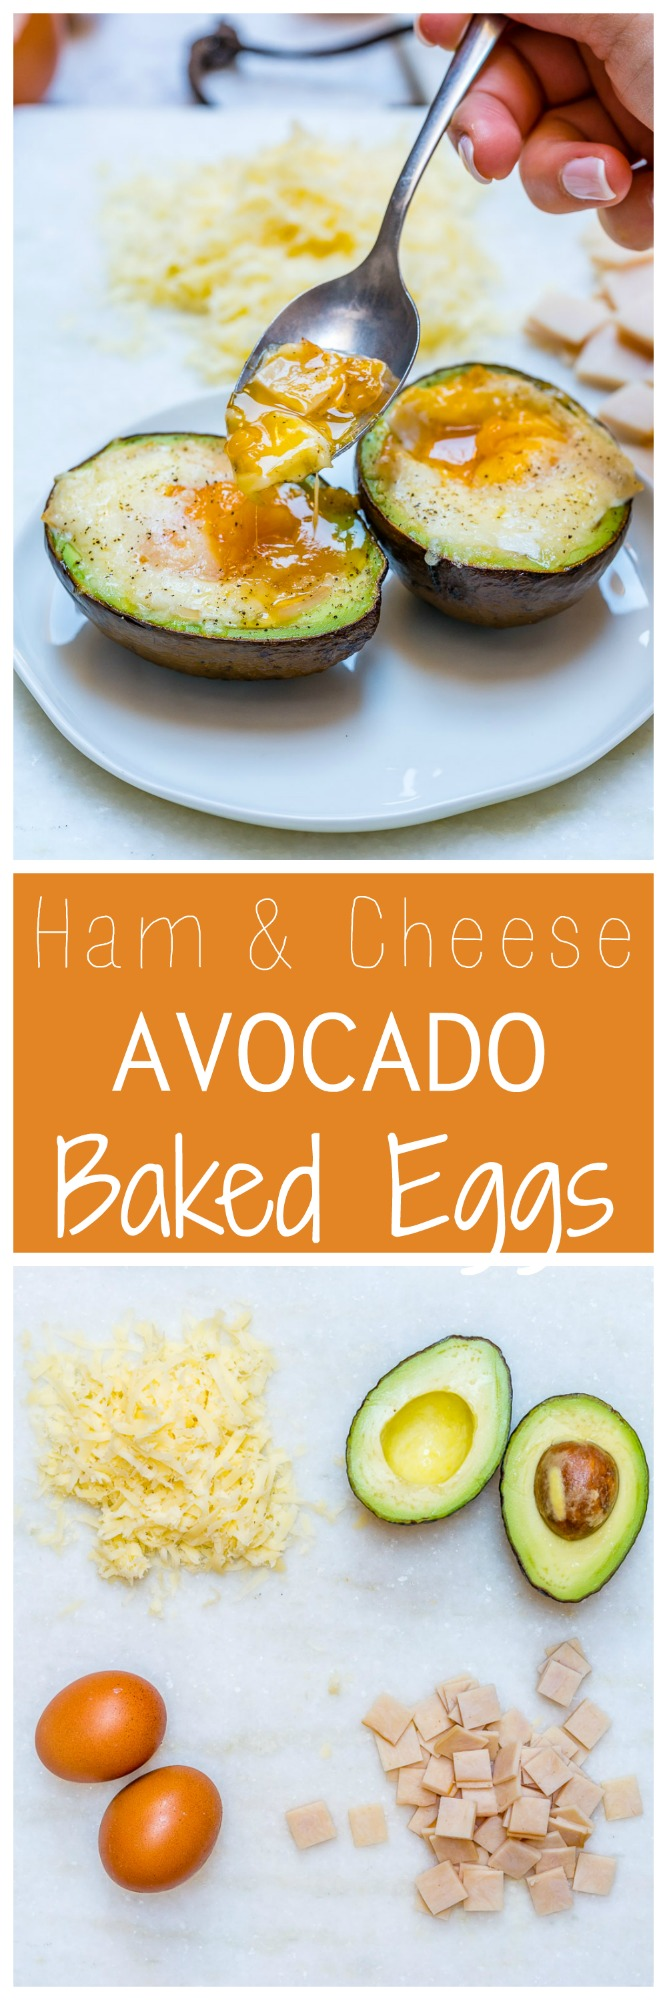 Ham Cheese Avocado Baked Eggs CleanFoodCrush